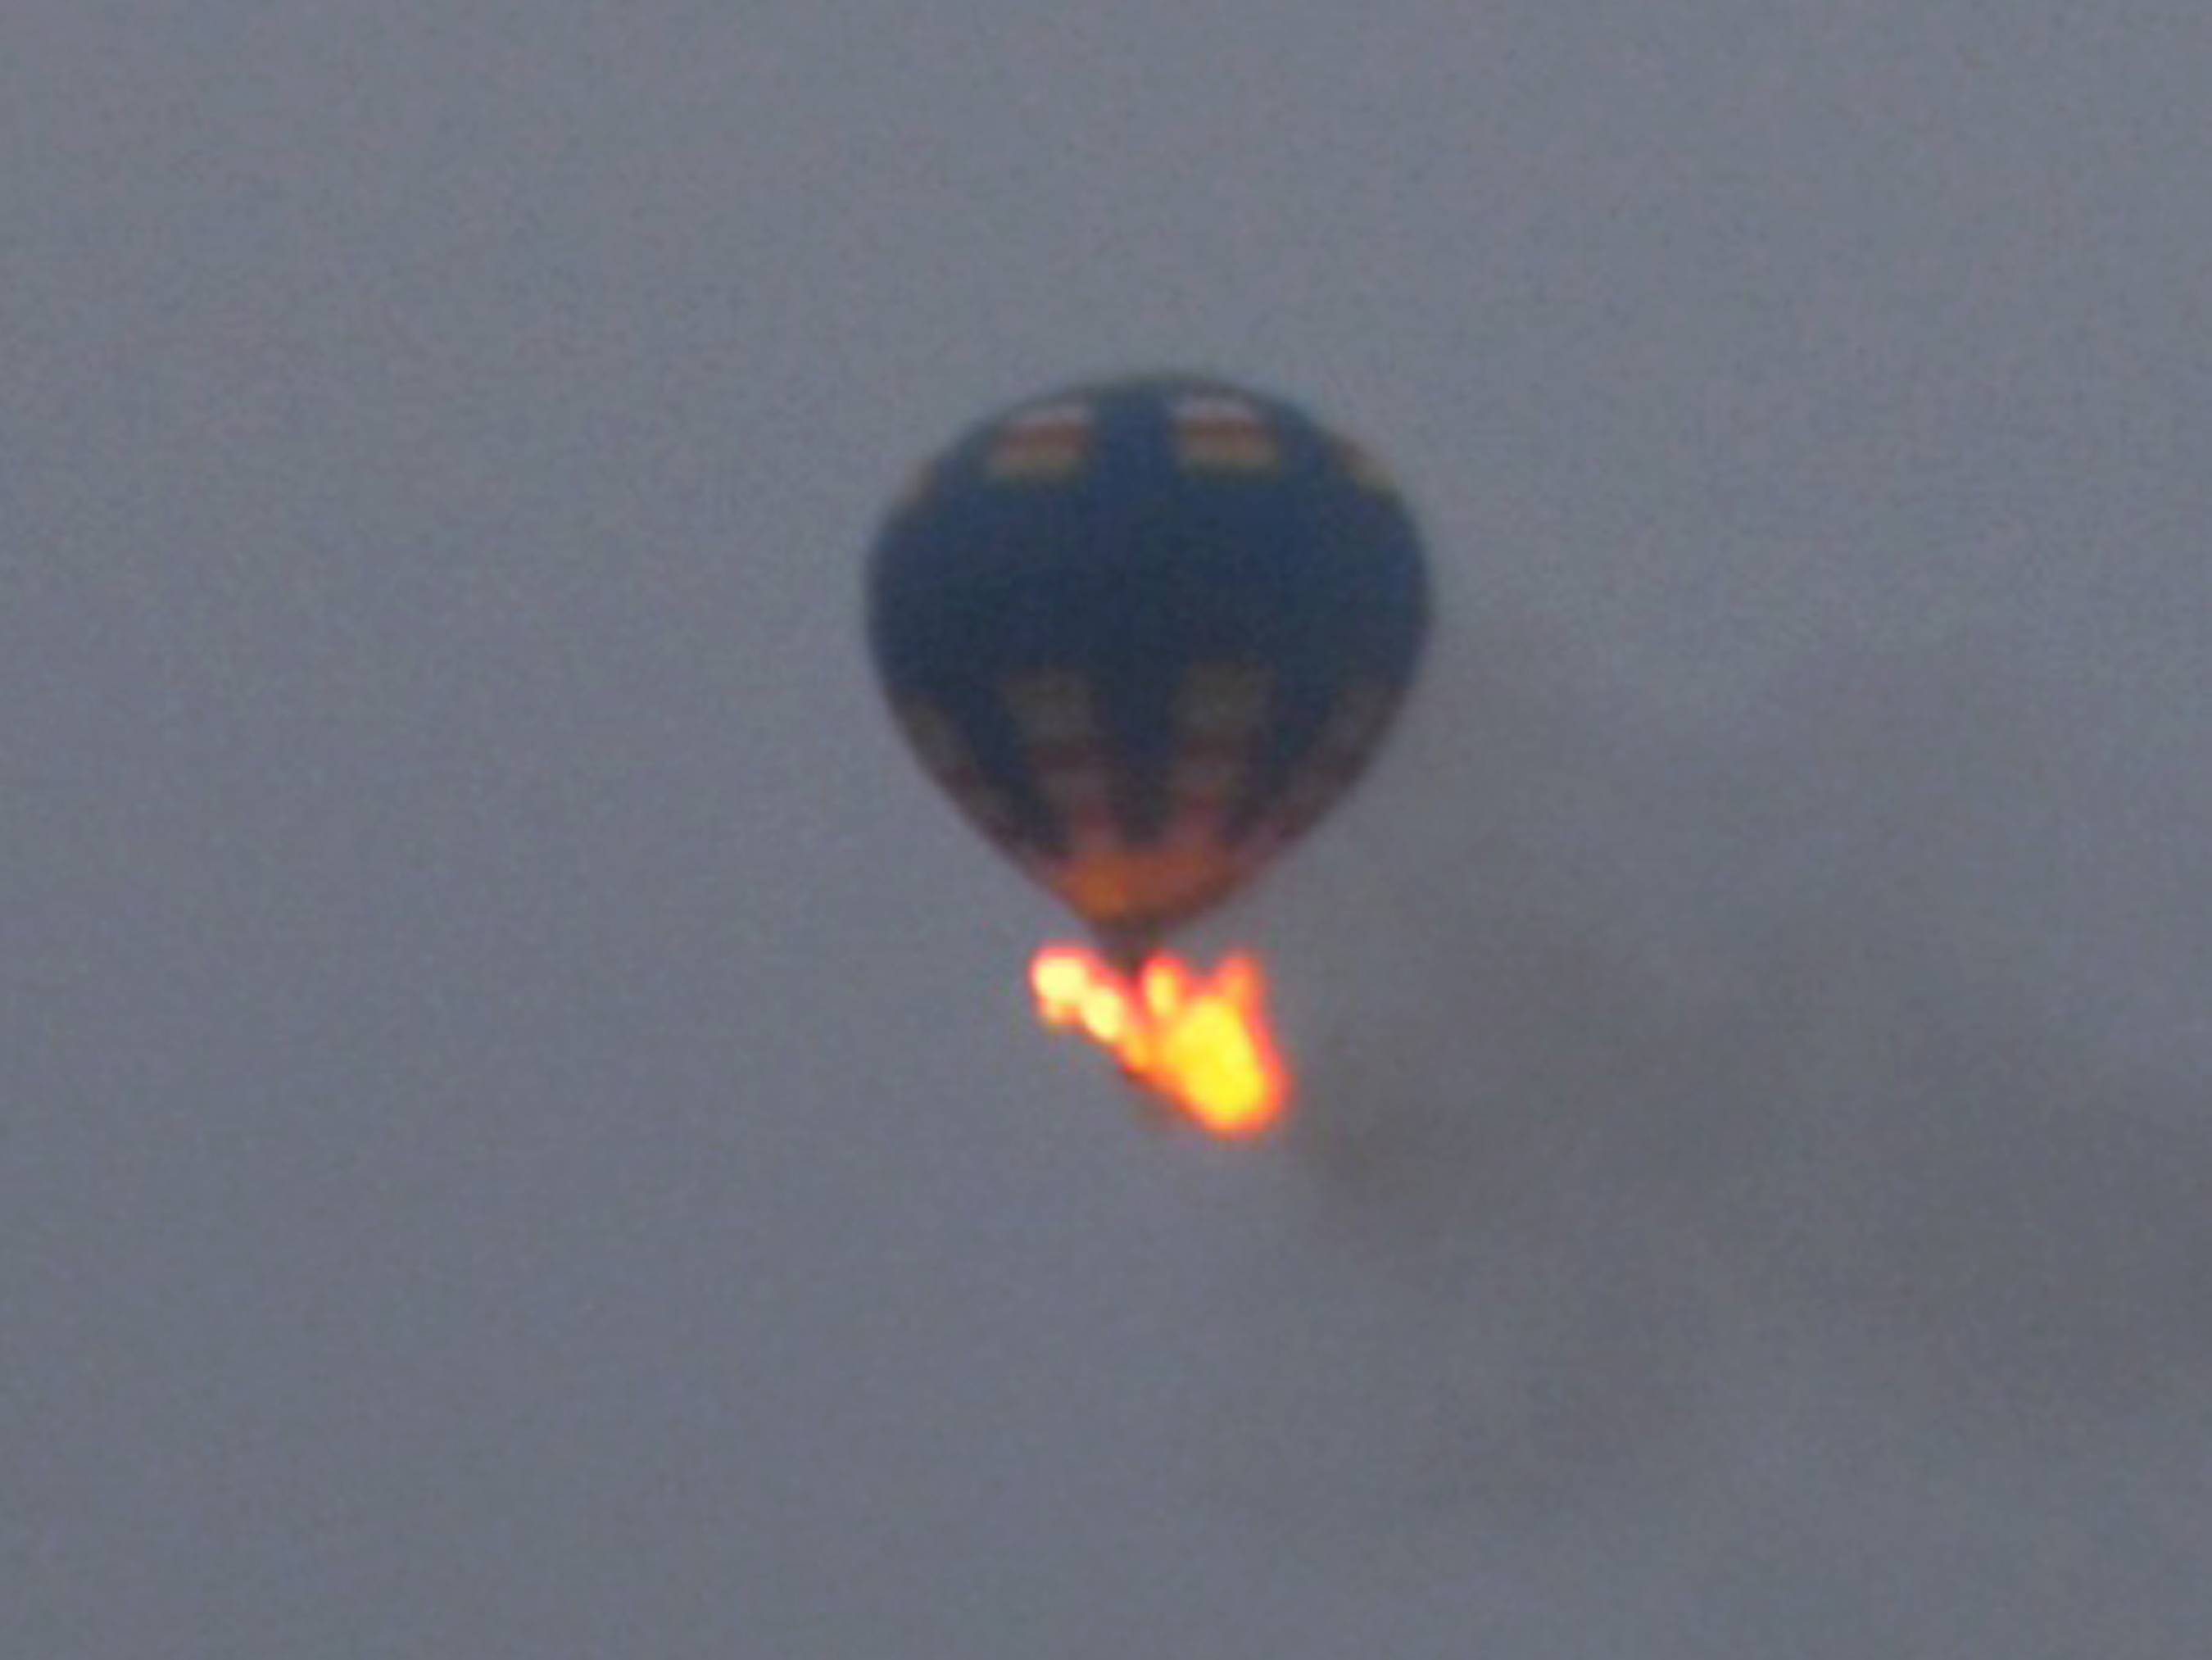 A hot-air balloon that caught fire and crashed Friday evening in Virginia.